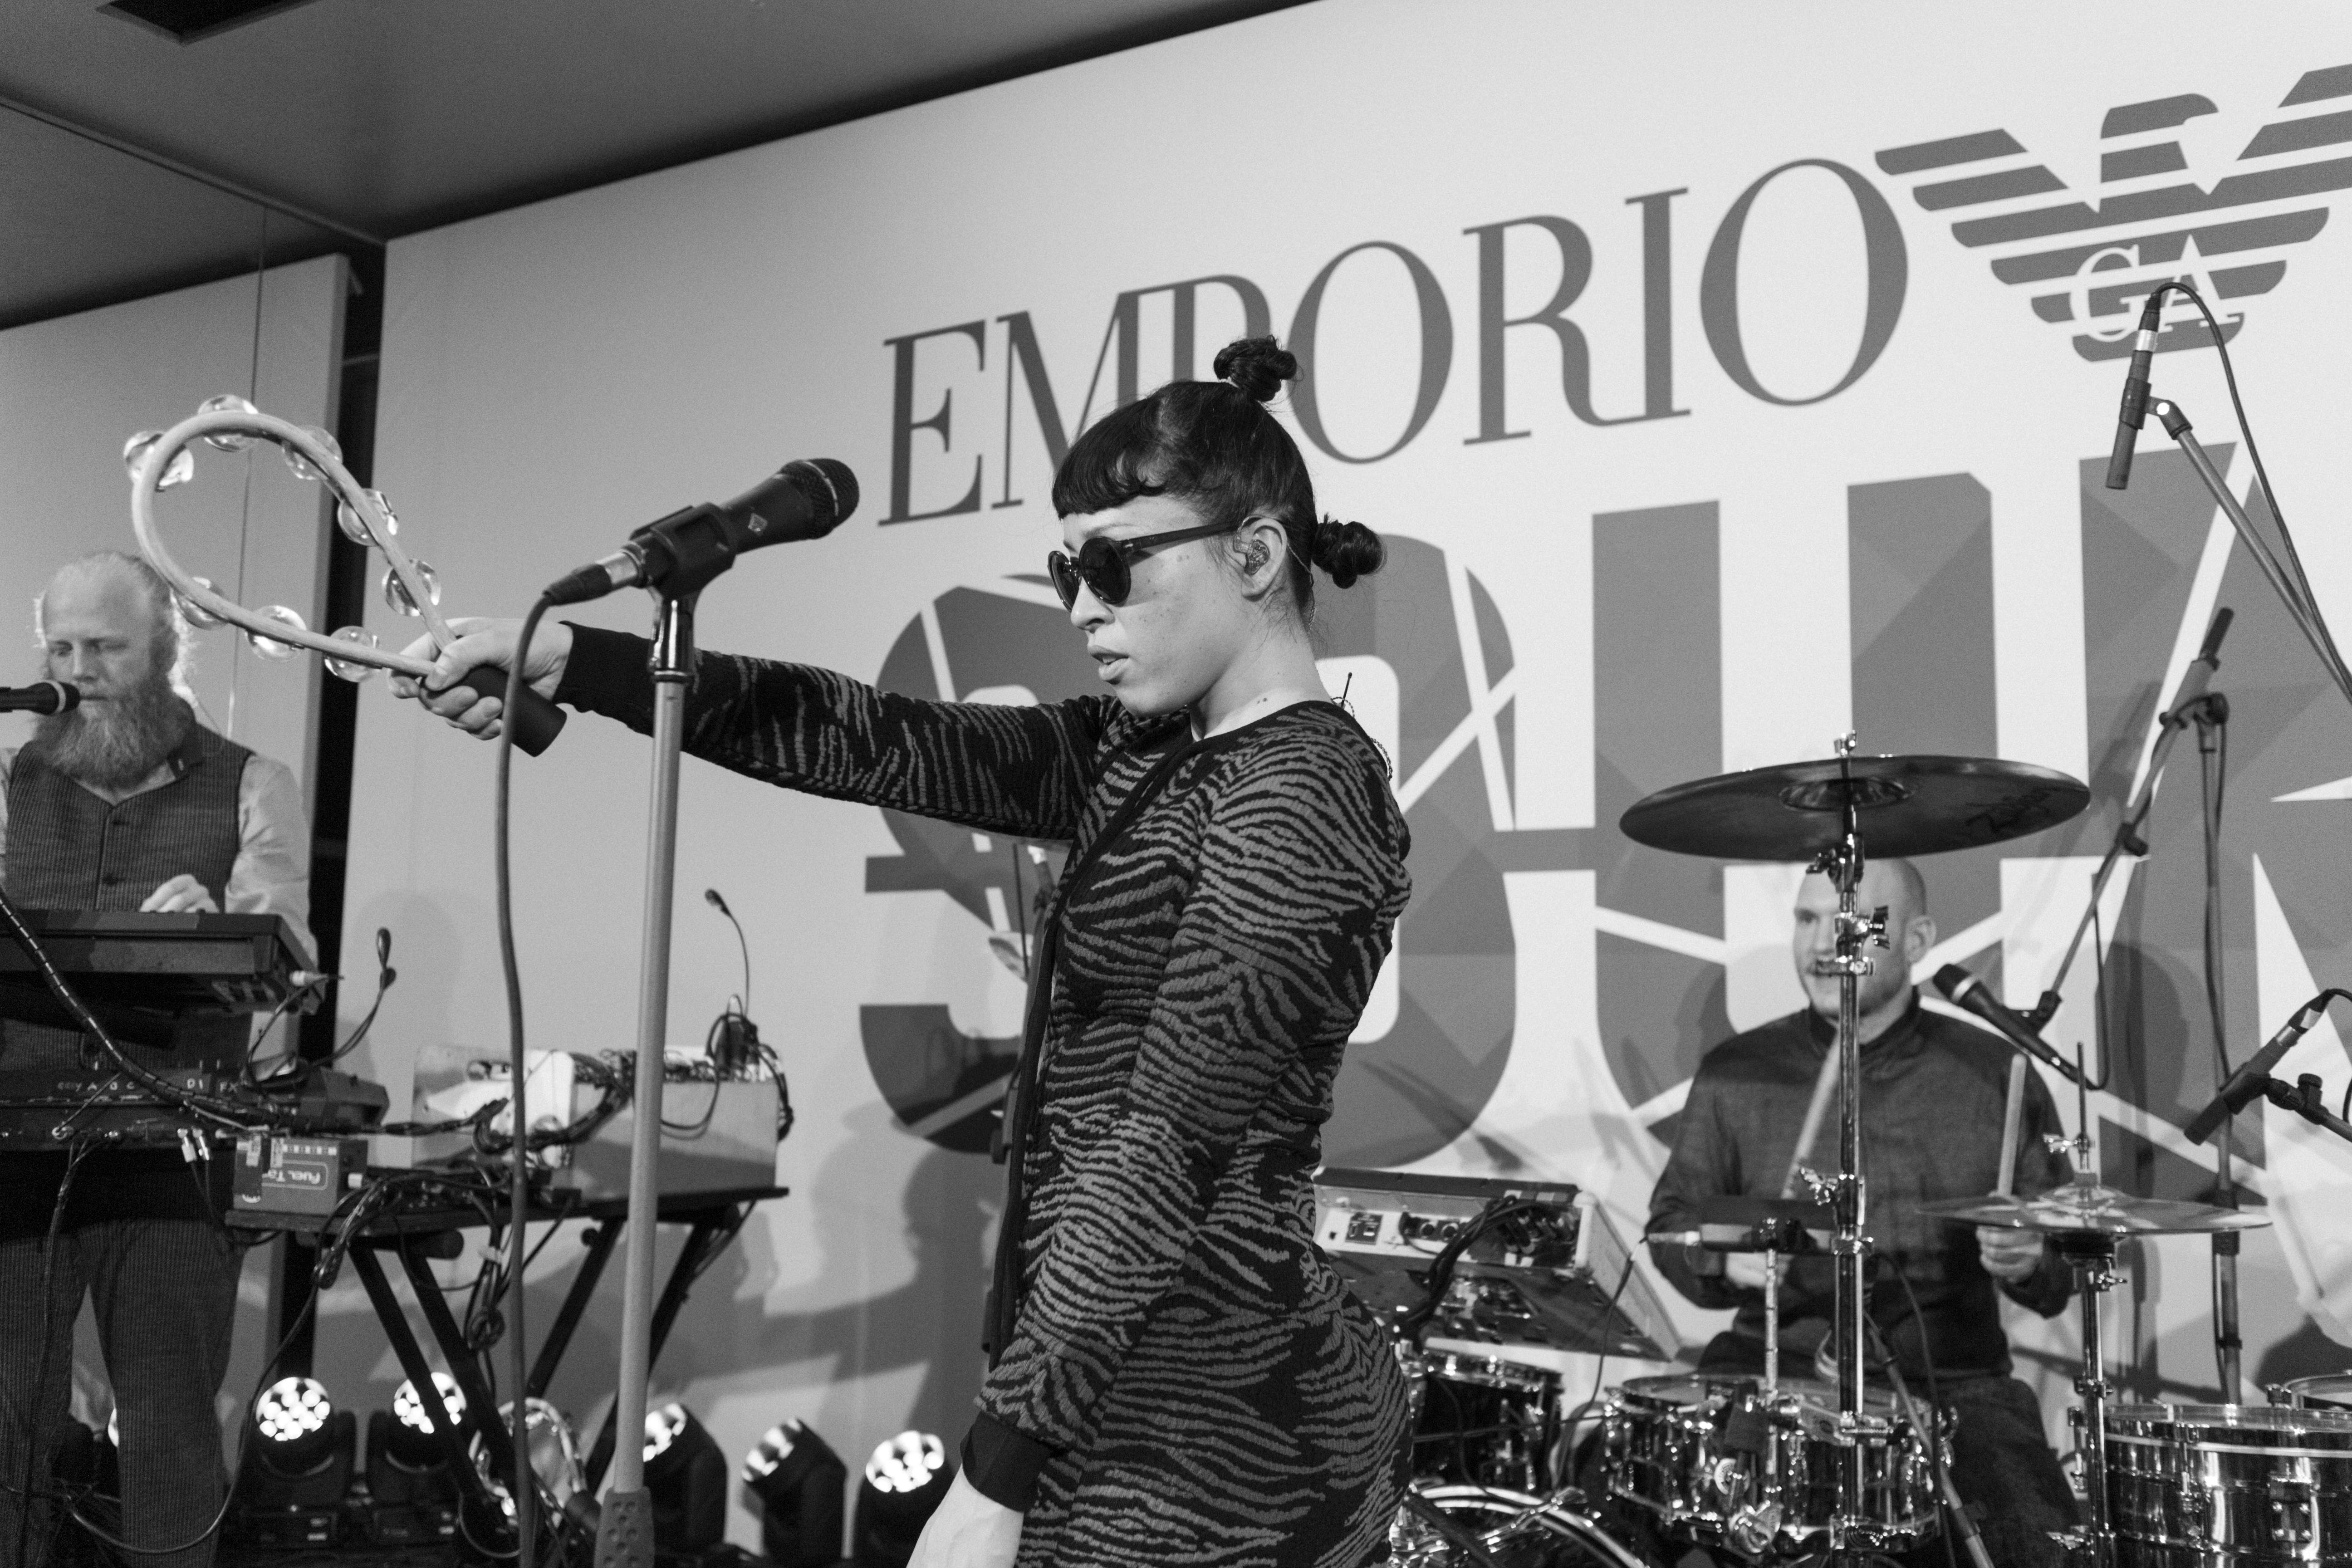 I HEART ALICE - Fashionblog from Germany: Emporio Armani Sound with Little Dragon